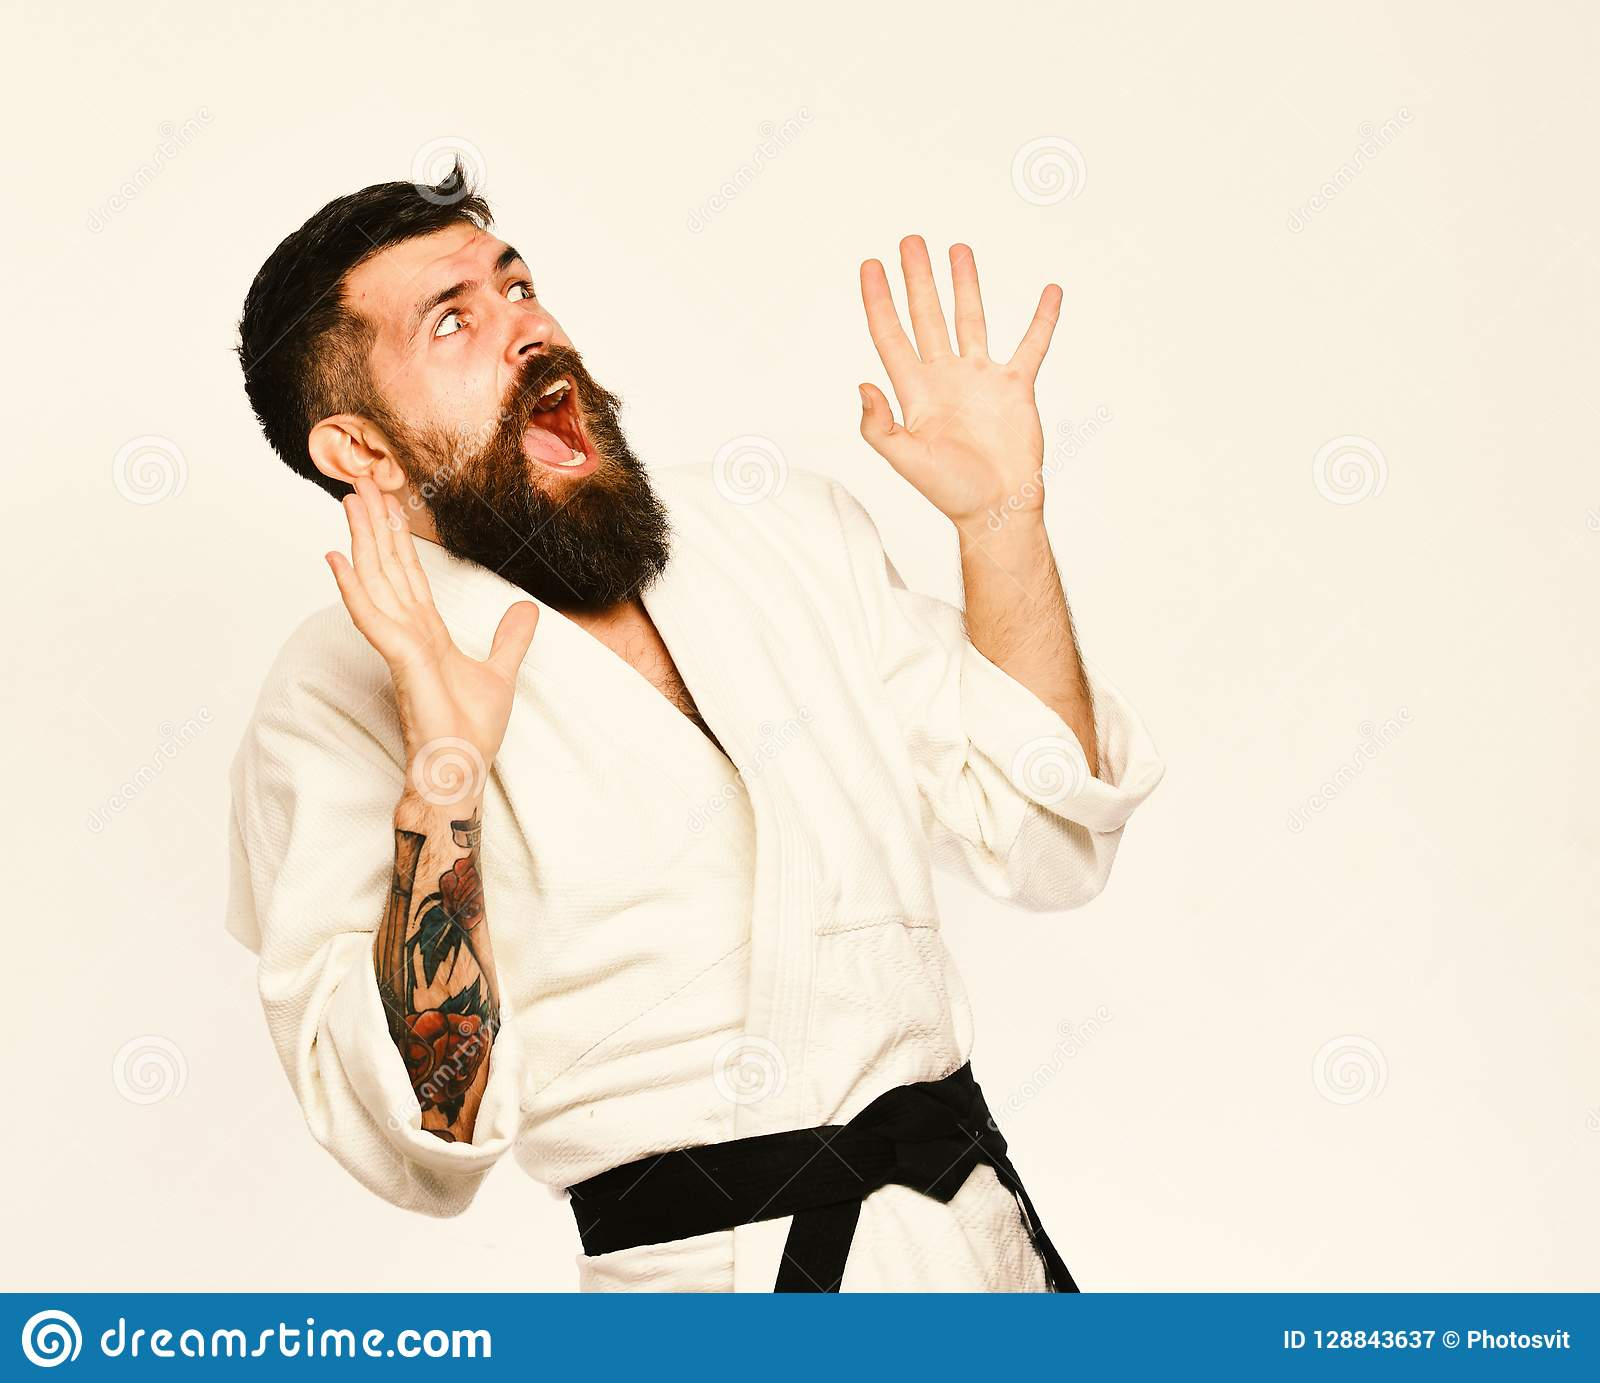 Karate man with scared face in uniform. Man with beard